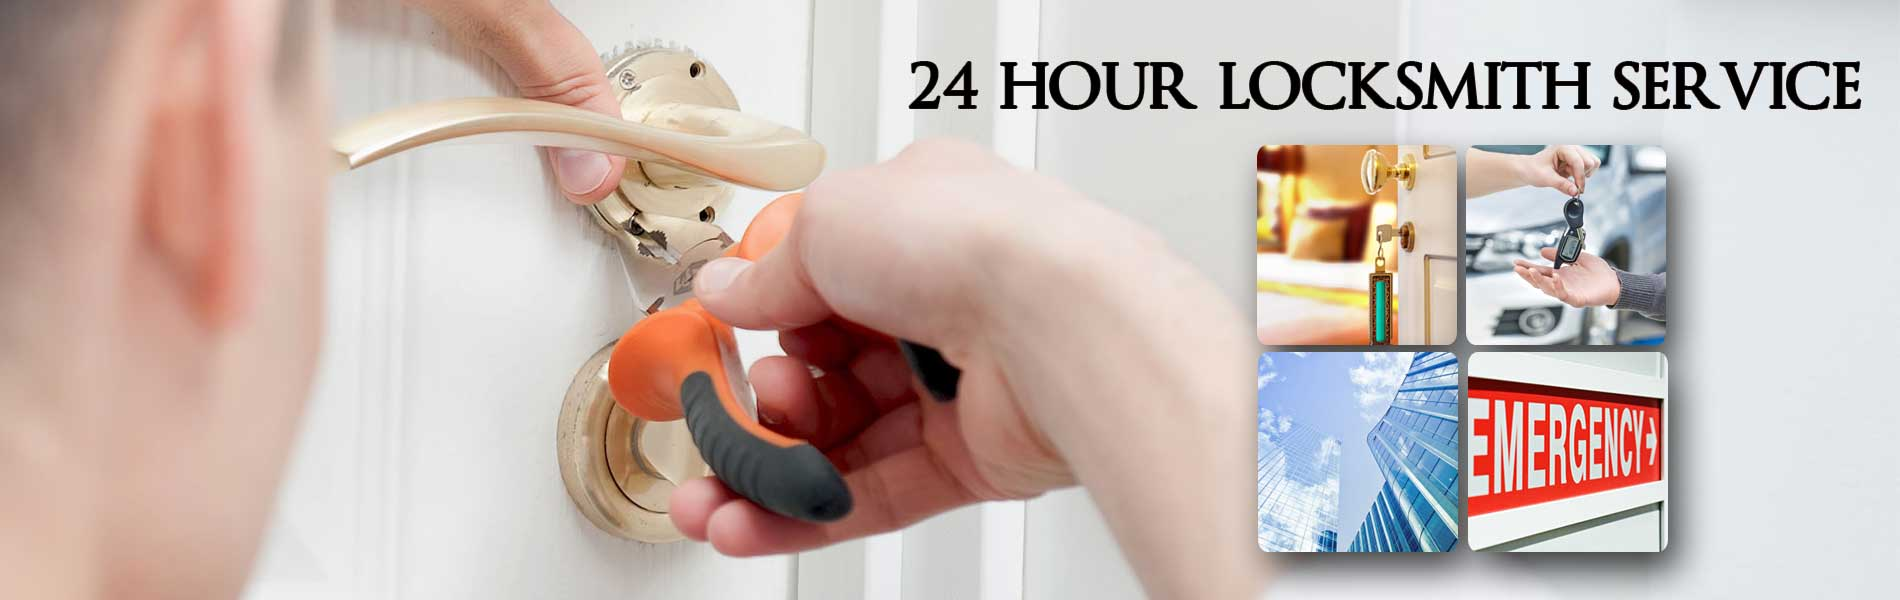 New York Master Locksmith New York, NY 212-918-5488